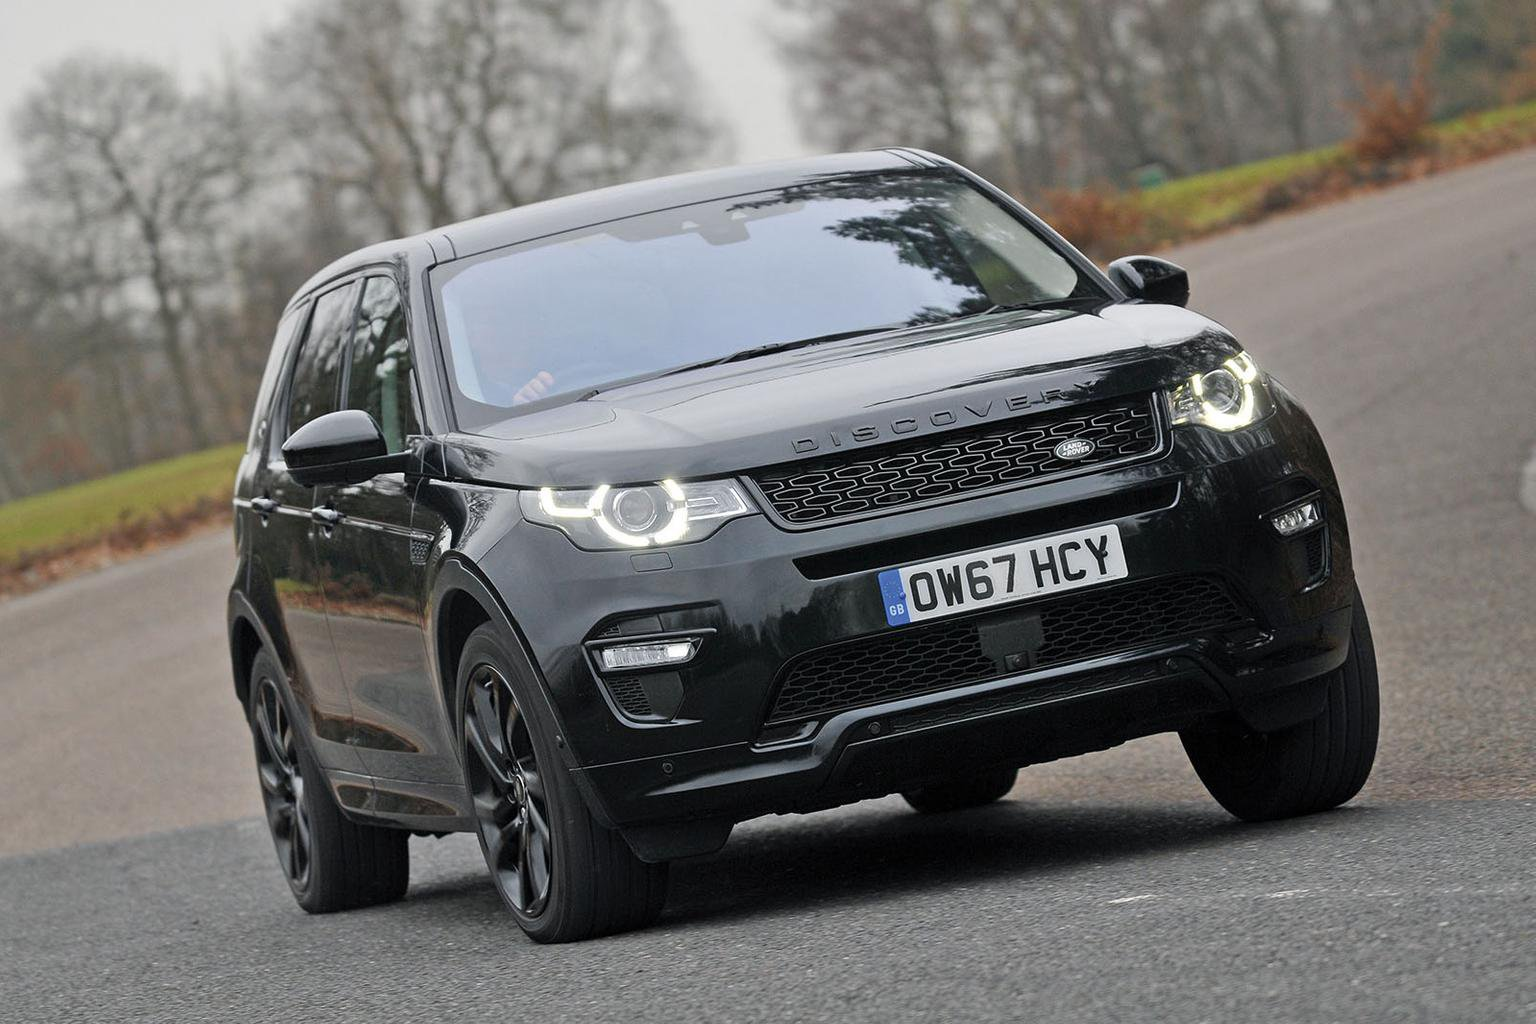 2017 Land Rover Discovery Sport 2.0 SD4 240 review - verdict